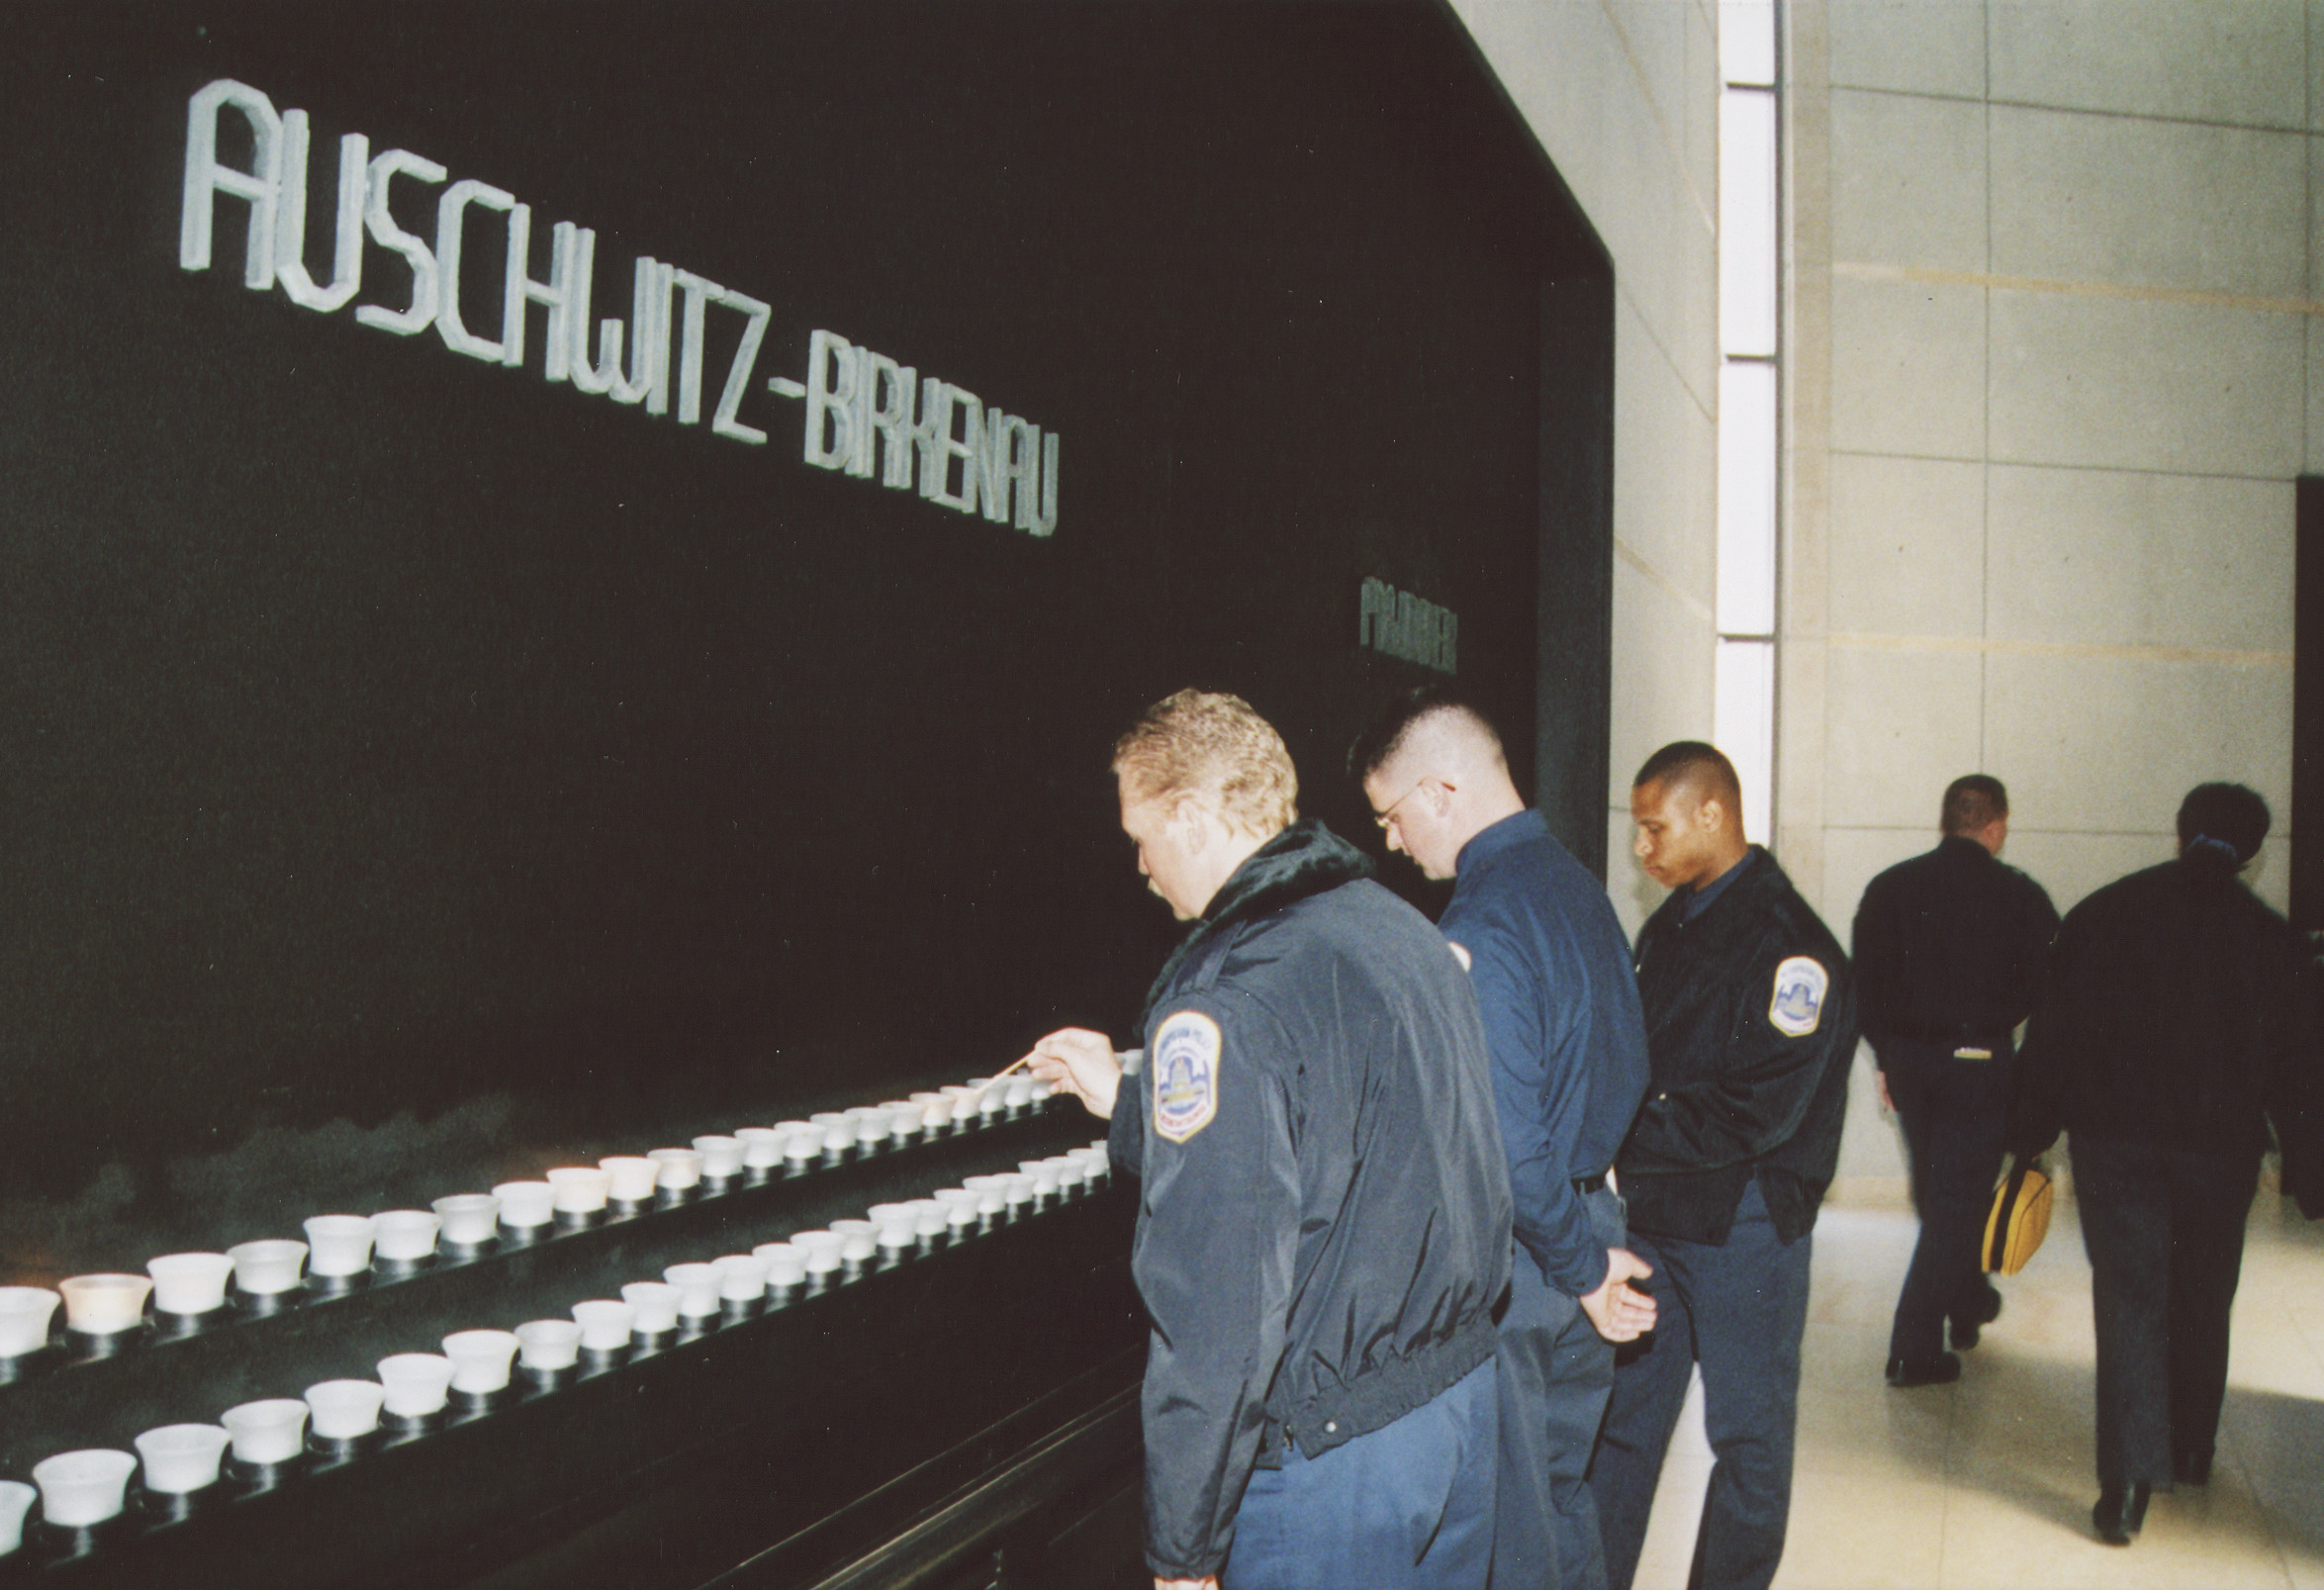 DC police training squad visits the U.S. Holocaust Memorial Museum.  Officers light candles in the Hall of Remembrance.